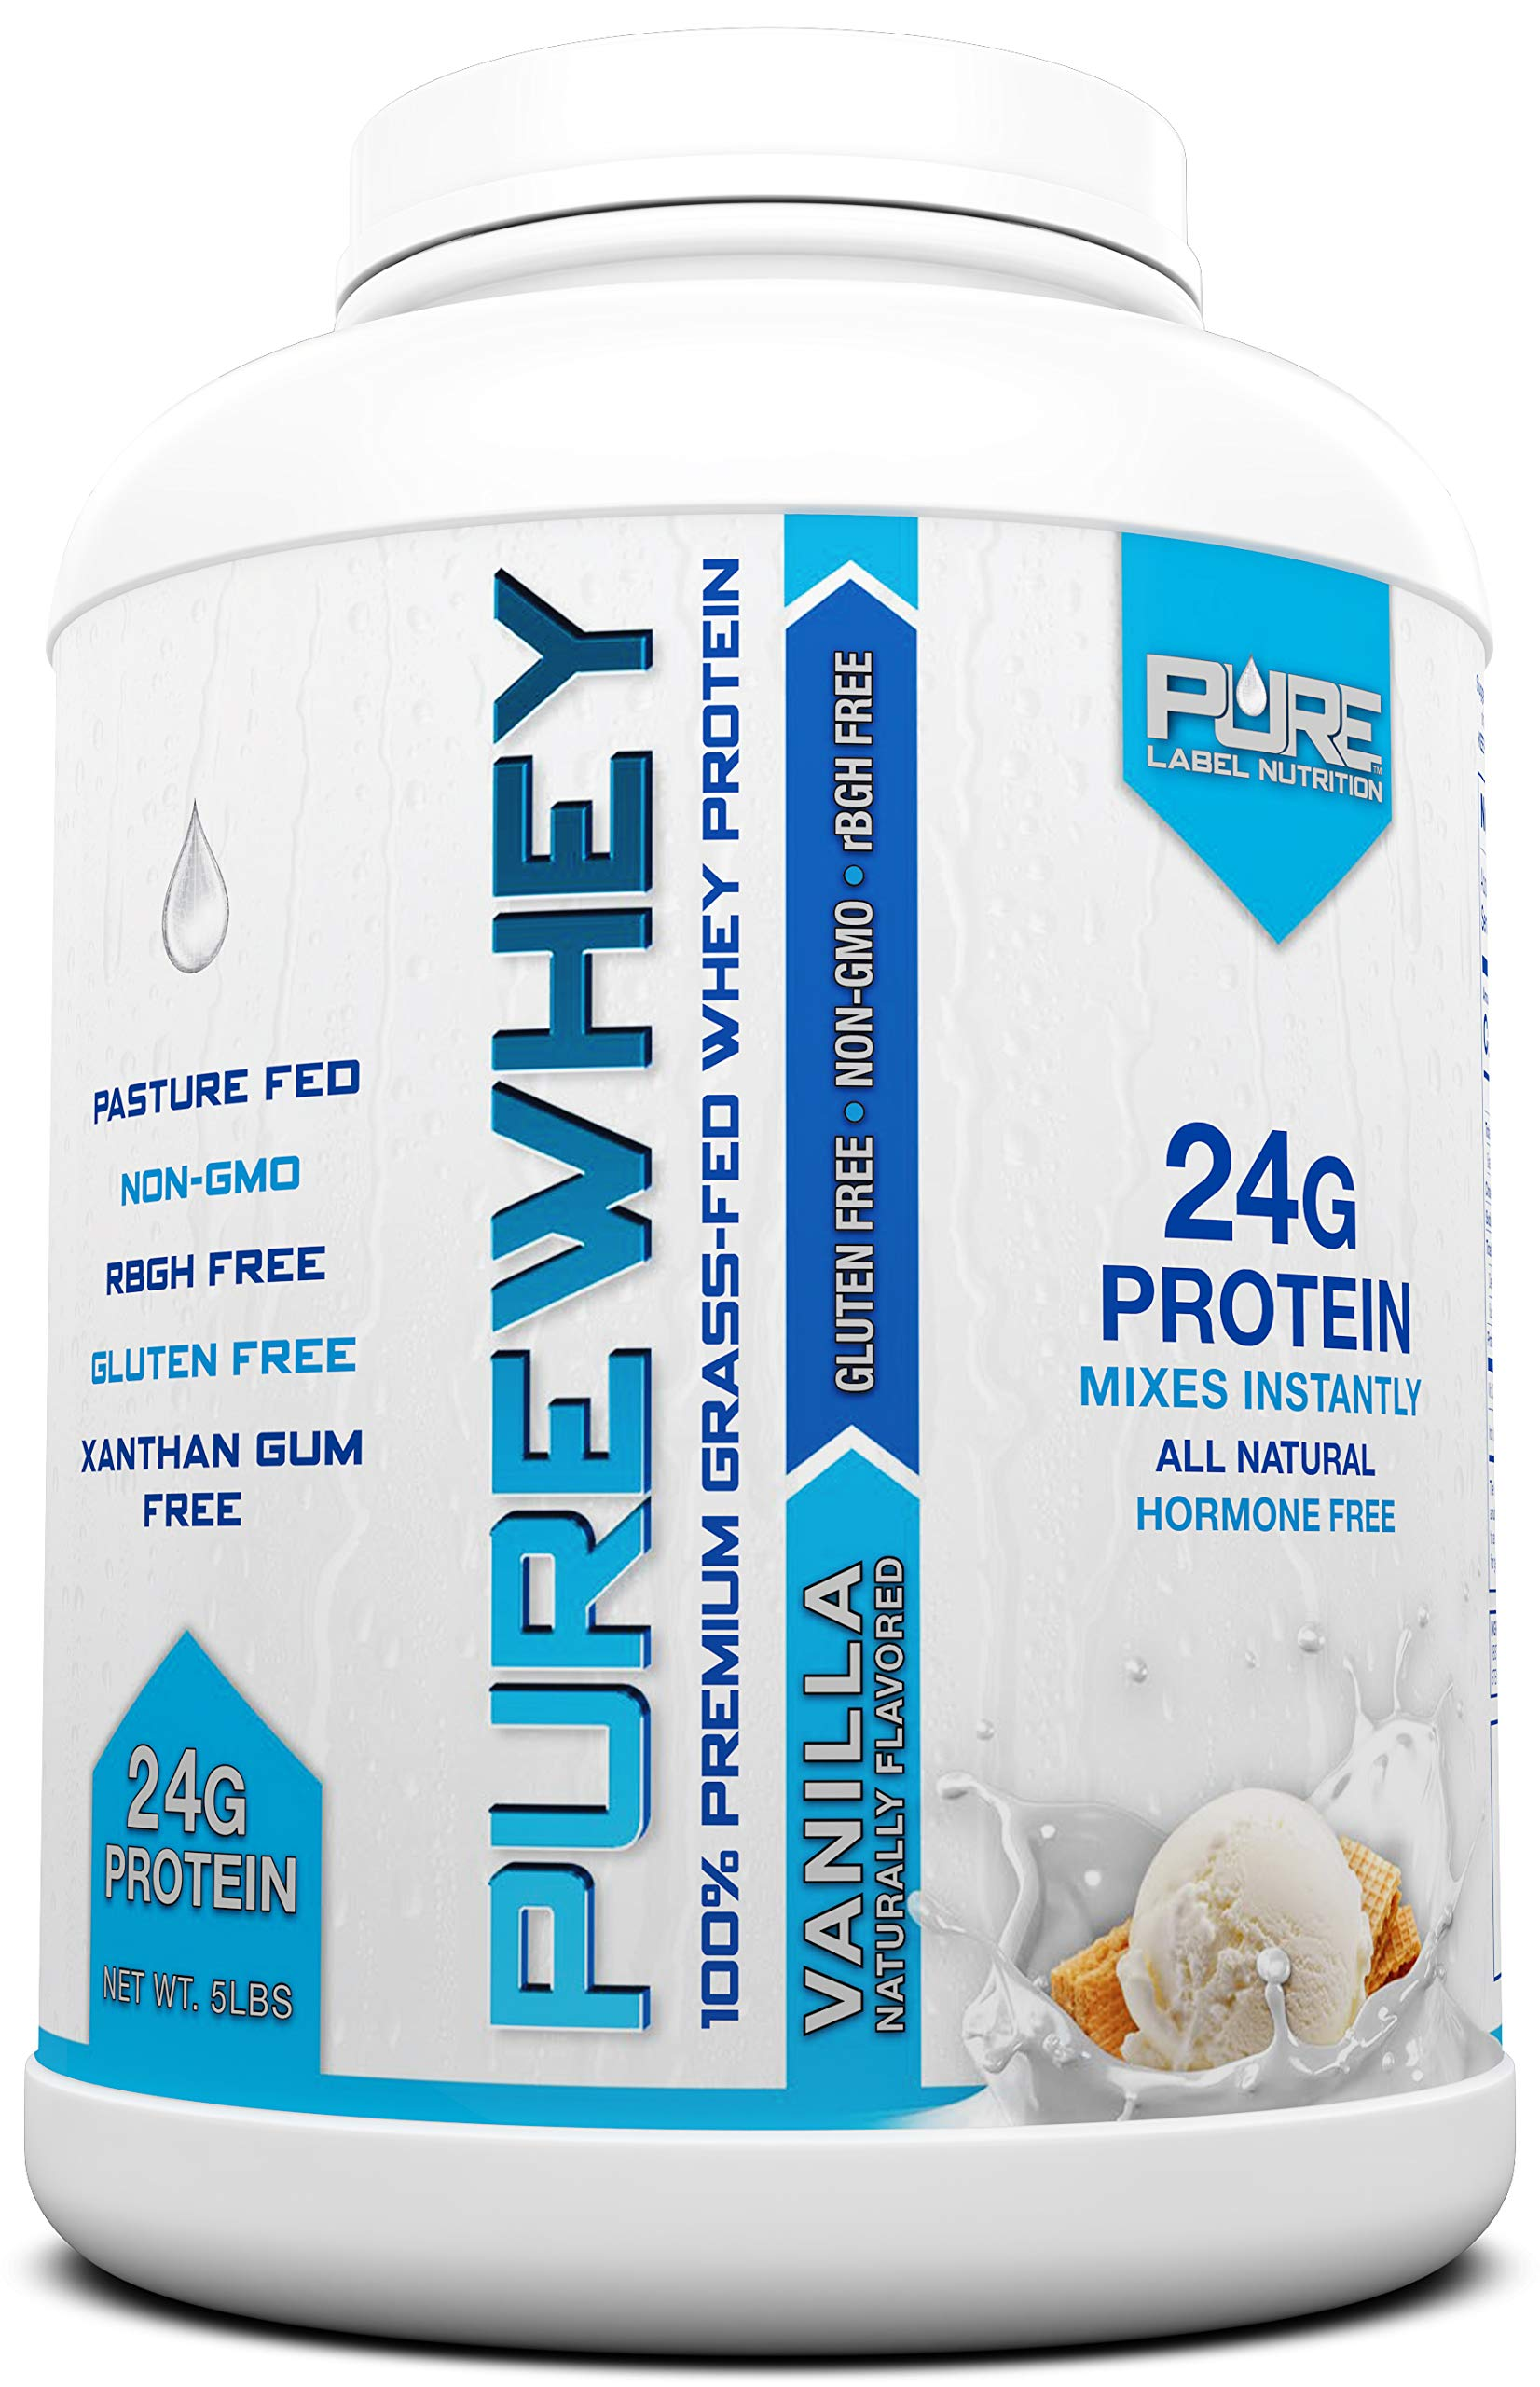 Grass Fed Whey Protein - 5lb Vanilla - 100% Natural, Cold Processed, Undenatured w/No Sweeteners or Added Sugars - rBGH Free, GMO-Free, Gluten Free, Preservative Free - Pure Whey by Pure Label Nutrition